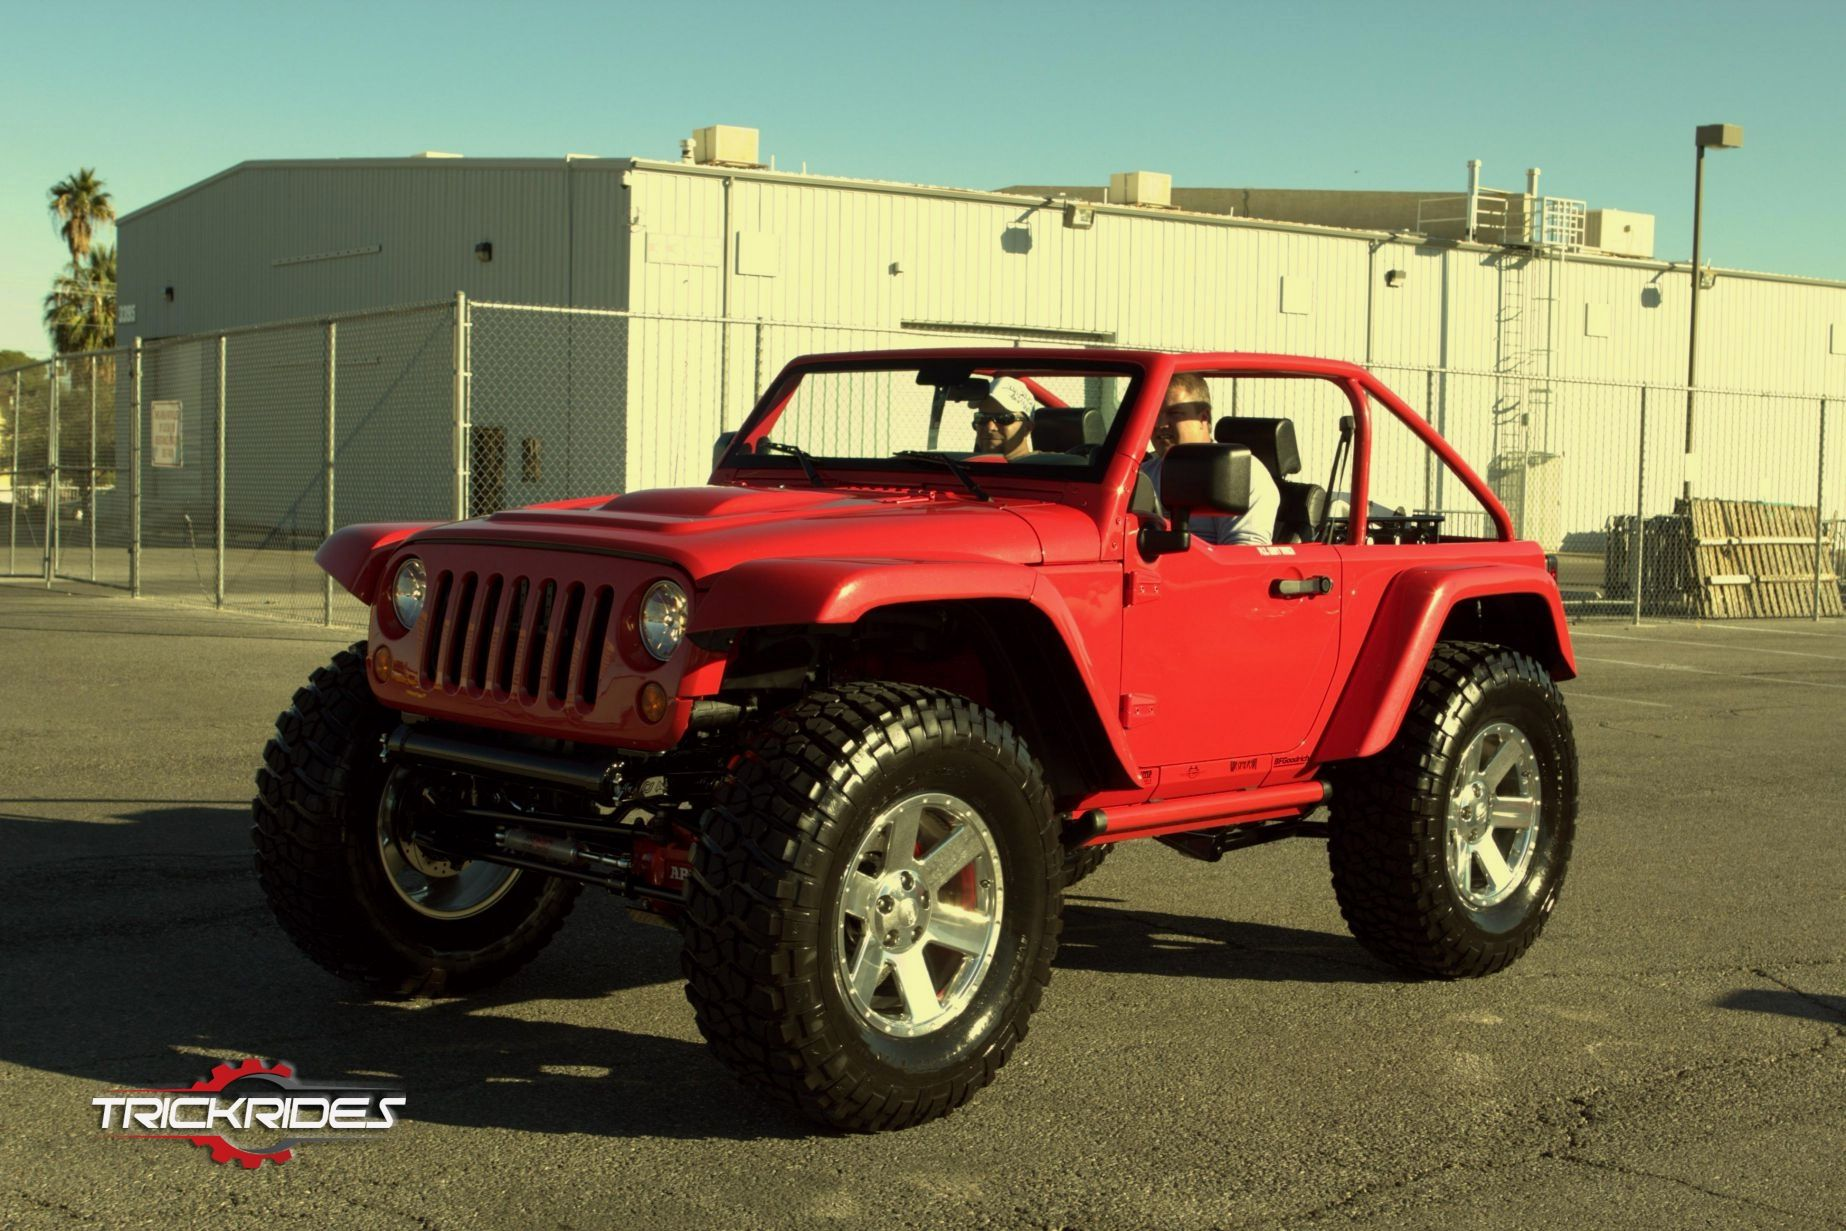 2010 Jeep Wrangler Rubicon by Billet Badges at SEMA show